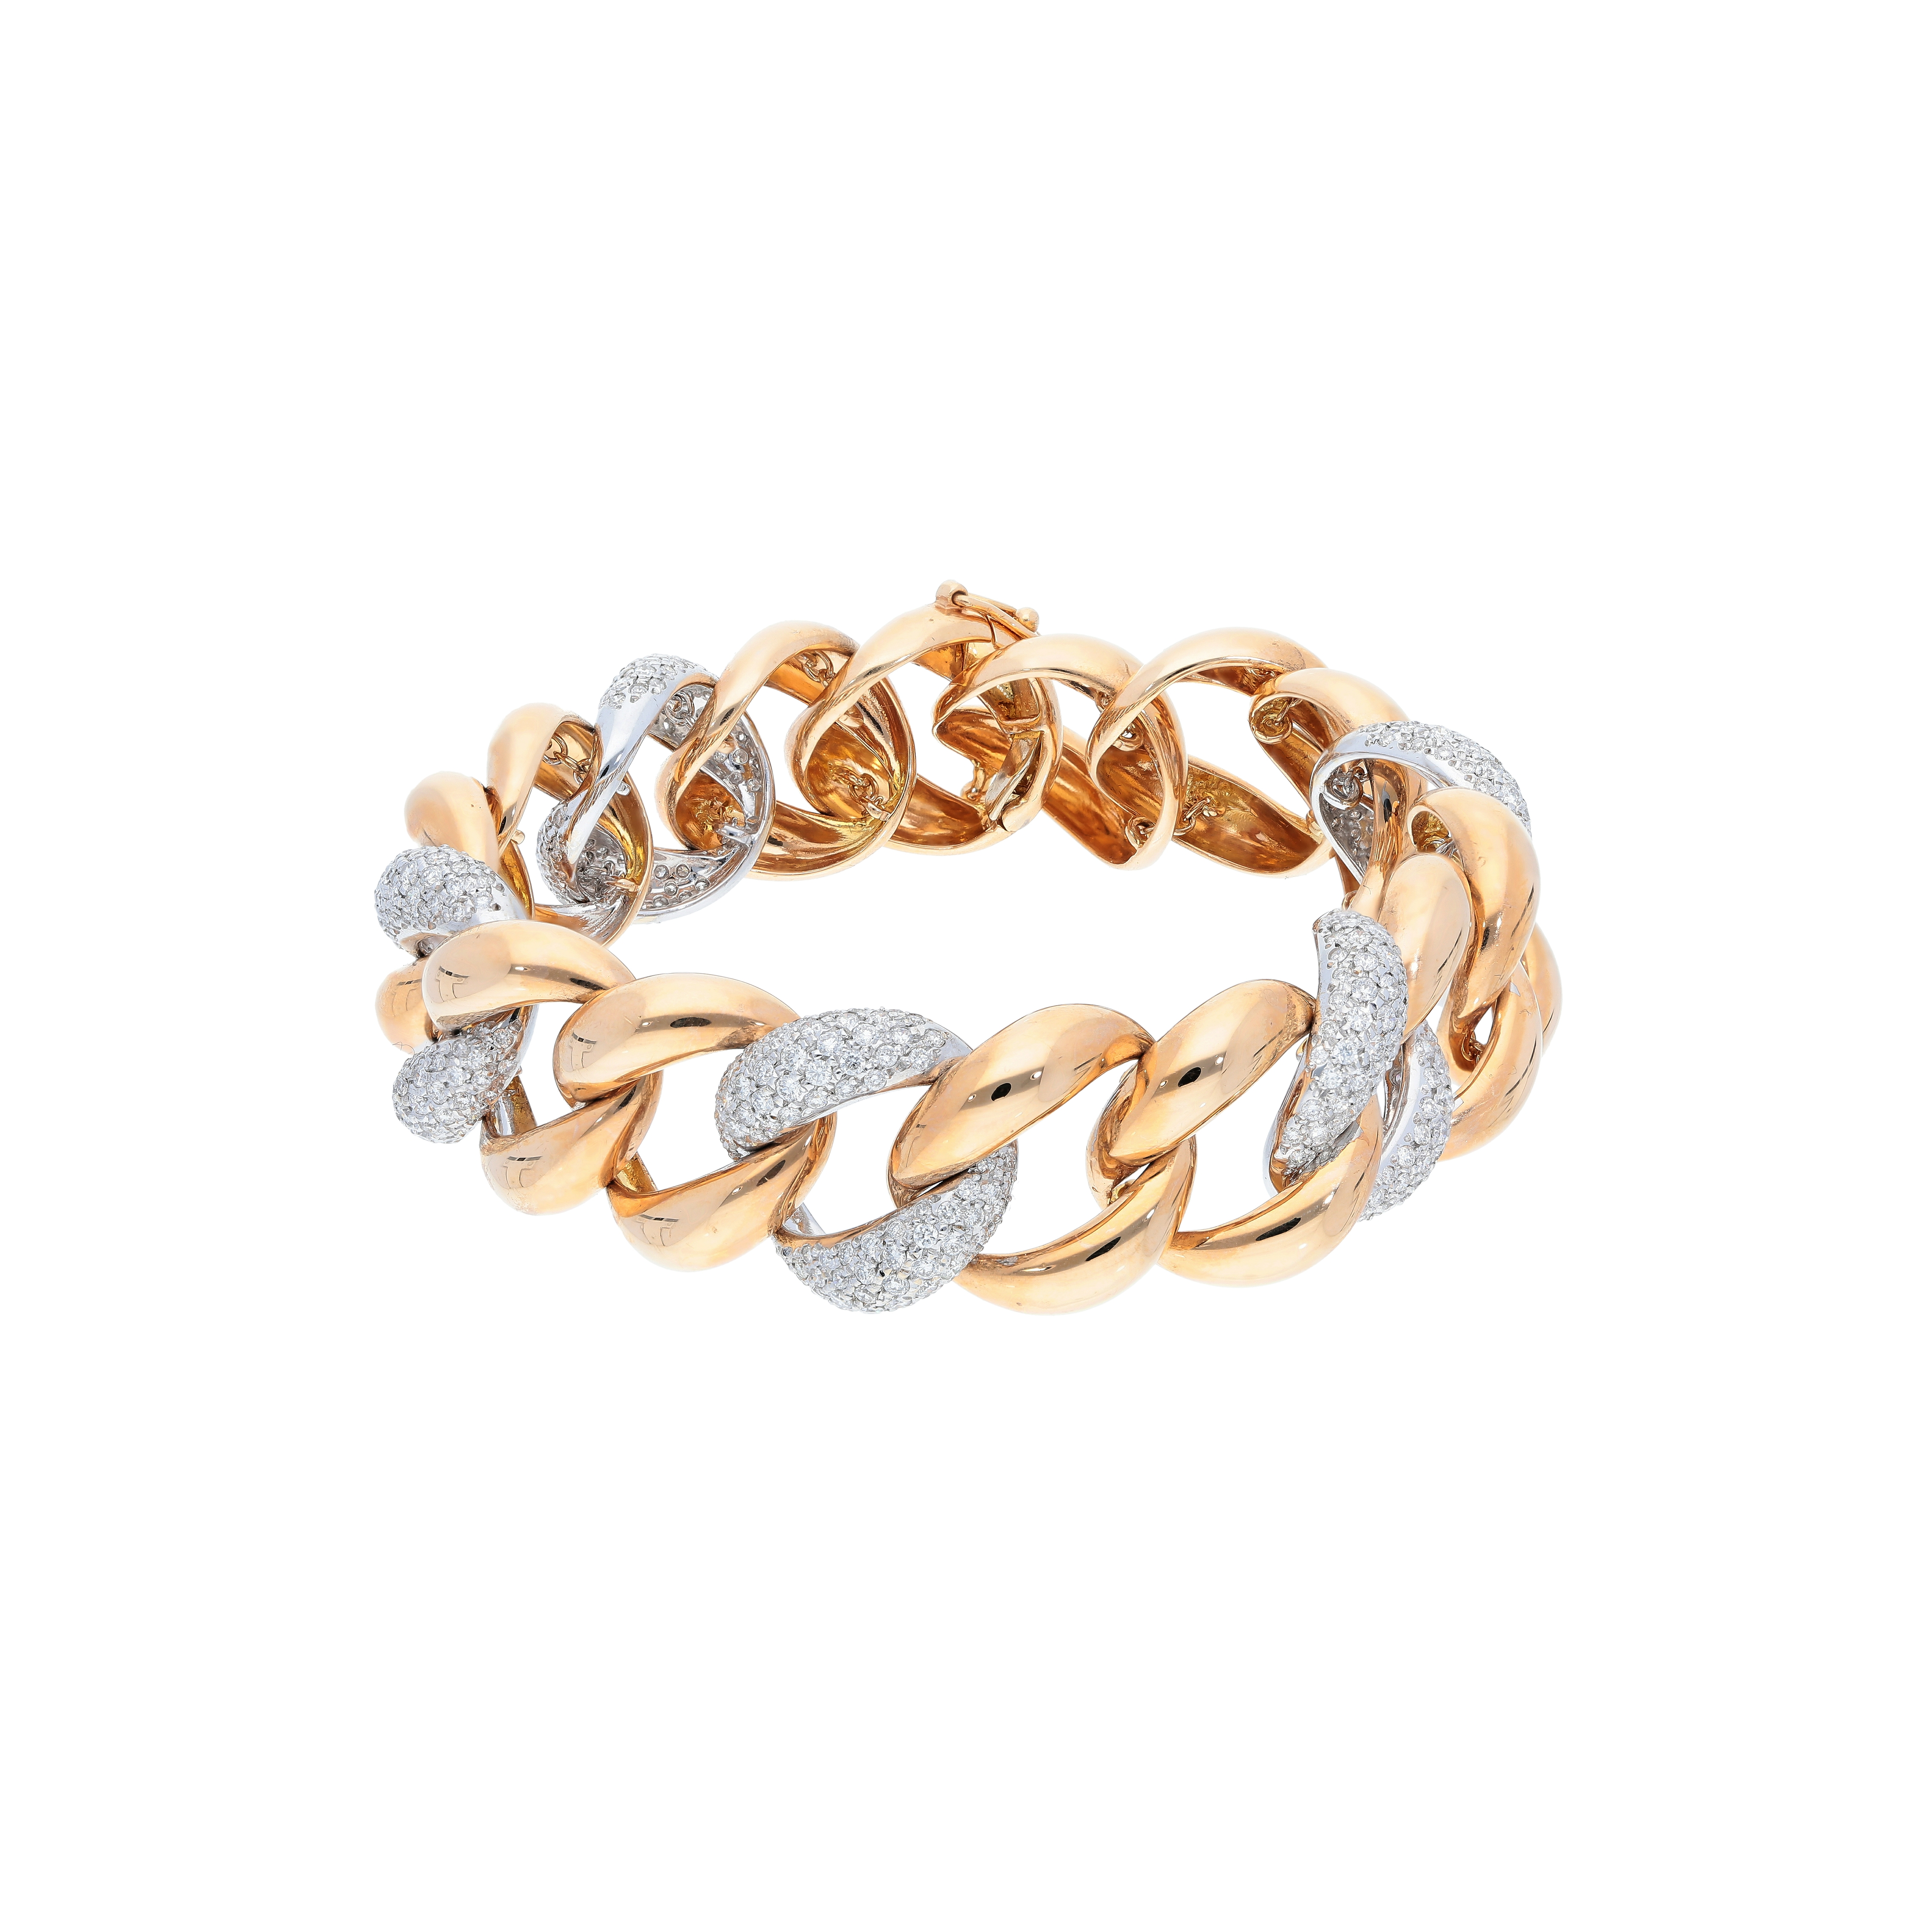 chain link bracelet Handmade 18kt rose and white gold with diamond